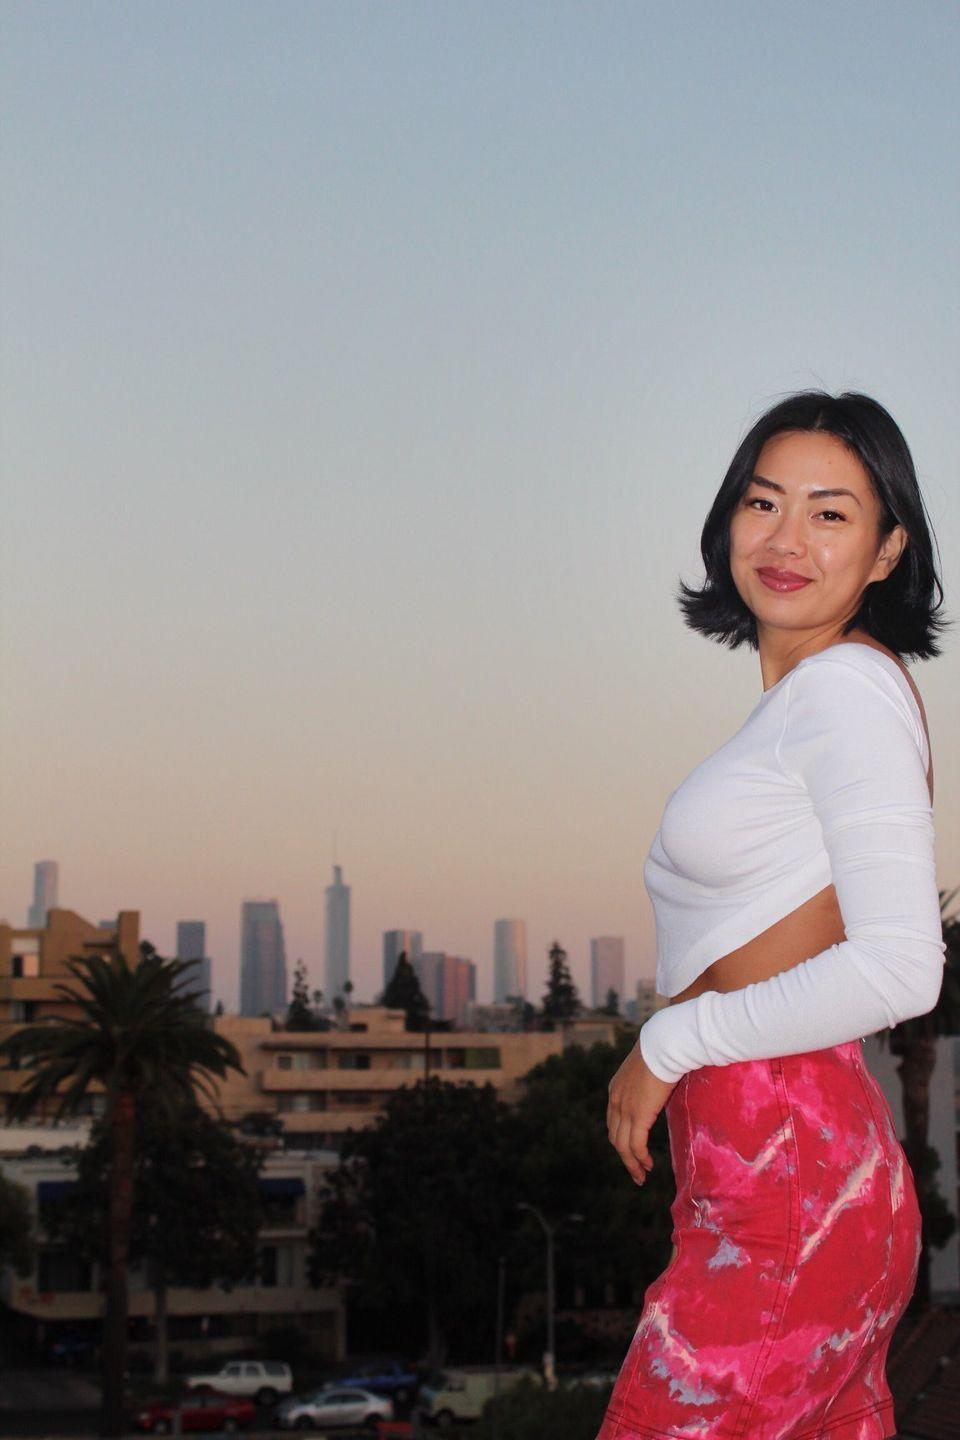 """<p>Age: 28</p><p>Hometown: Cypress, CA</p><p>Instagram: <a href=""""https://www.instagram.com/kimawaywithme/"""" rel=""""nofollow noopener"""" target=""""_blank"""" data-ylk=""""slk:@kimawaywithme"""" class=""""link rapid-noclick-resp"""">@kimawaywithme</a> </p><p>This """"professional dumpling"""" is a bona fide travel blogger with the best Instagram handle in history. But since travel isn't much of a thing these days, she works as a registered nurse and has been documenting her experience working during the pandemic on Instagram for her followers to see. </p>"""